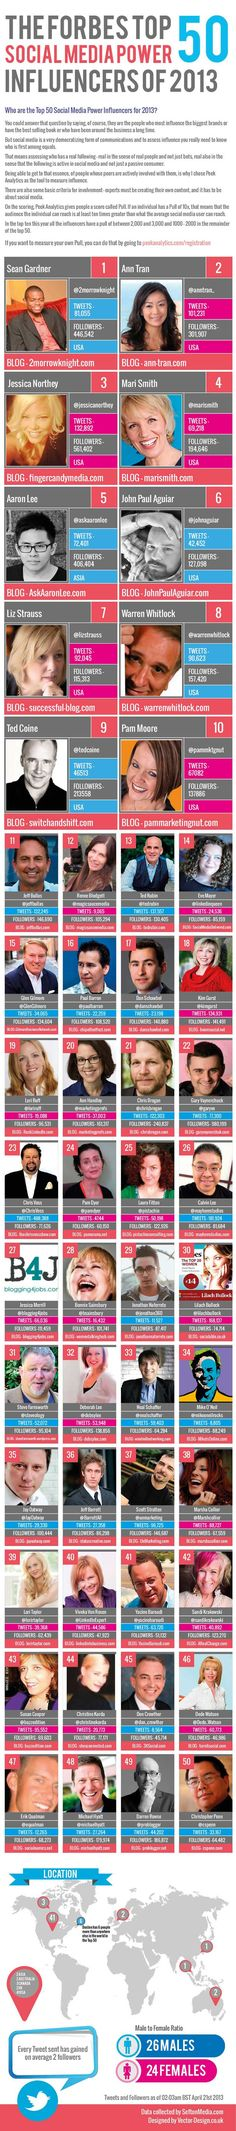 Infographic: Top 50 Social Media Influencers of 2013 as named by Forbes Mag